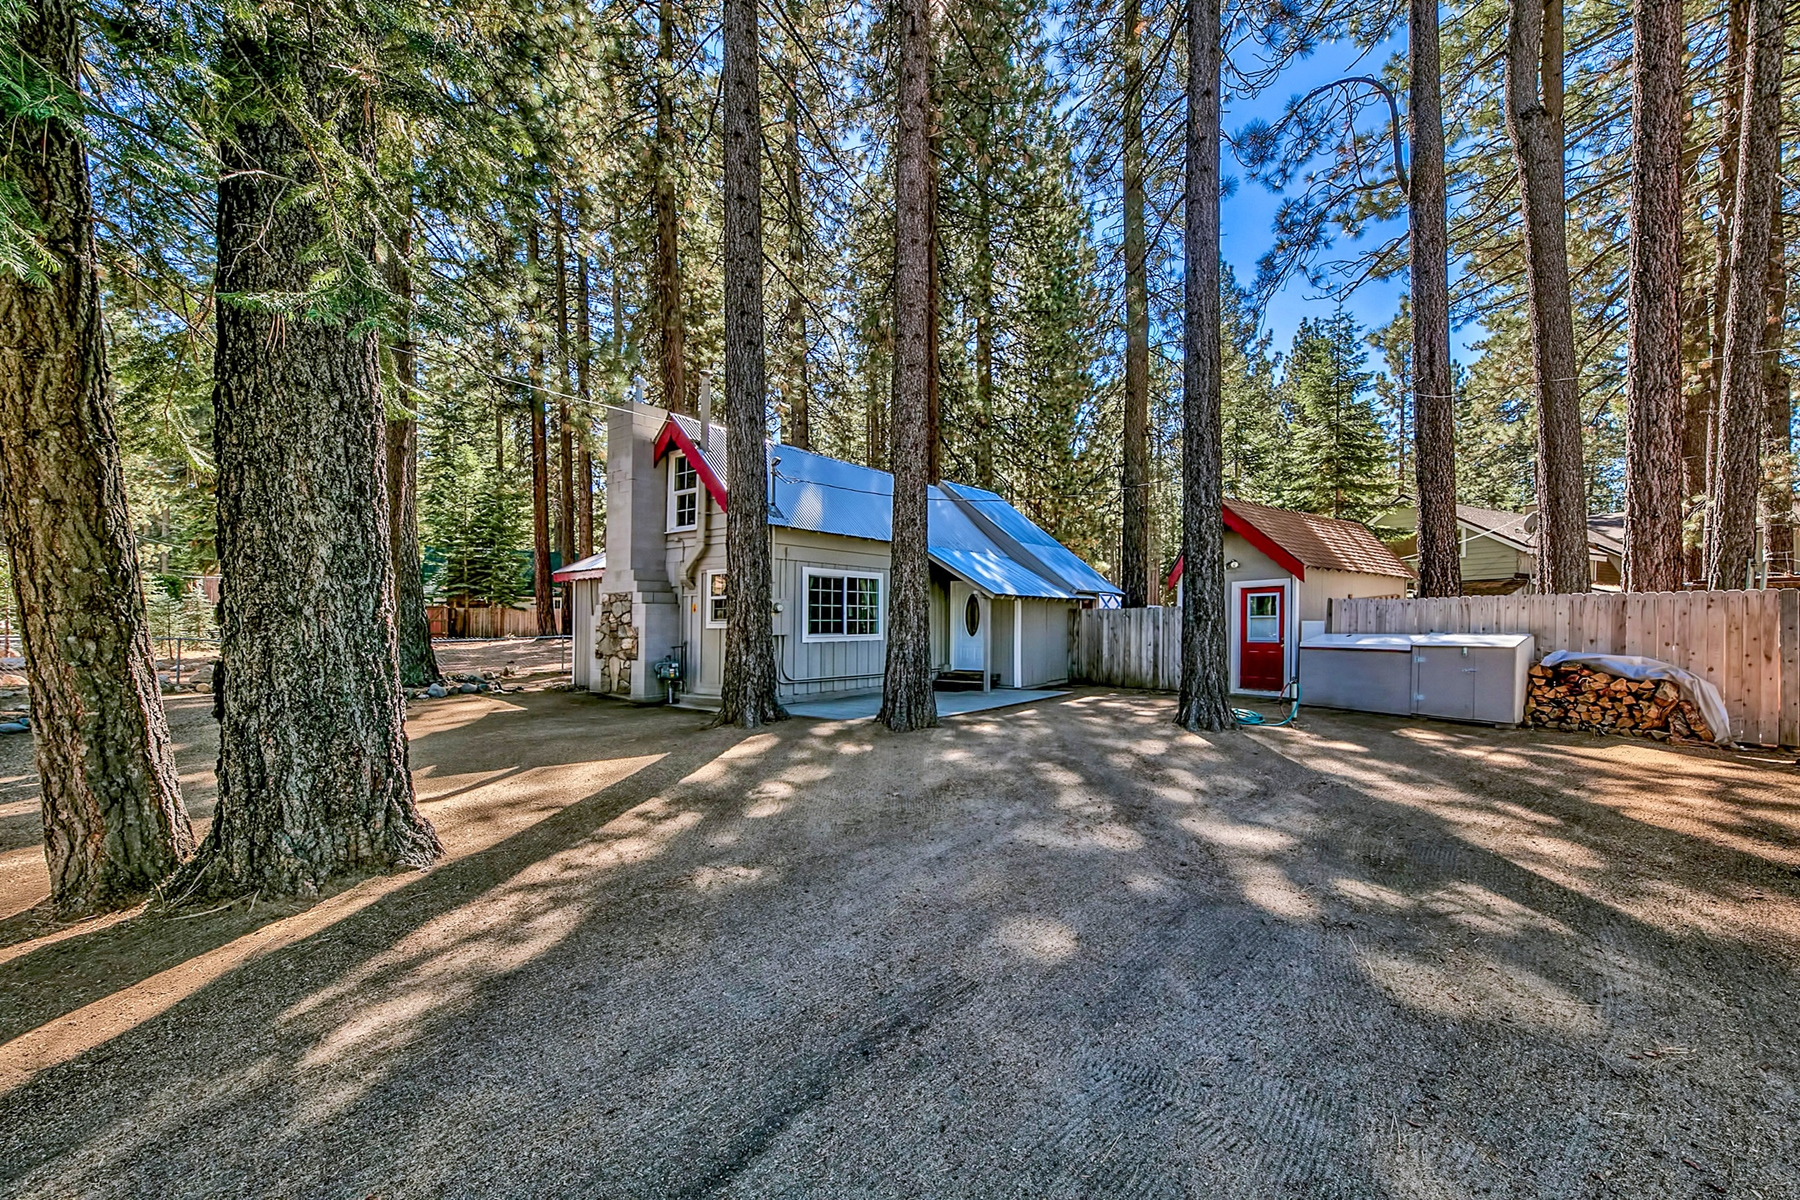 Single Family Home for Active at 1190 Bonanza Ave, South Lake Tahoe, CA 96150 1190 Bonanza Ave. South Lake Tahoe, California 96150 United States